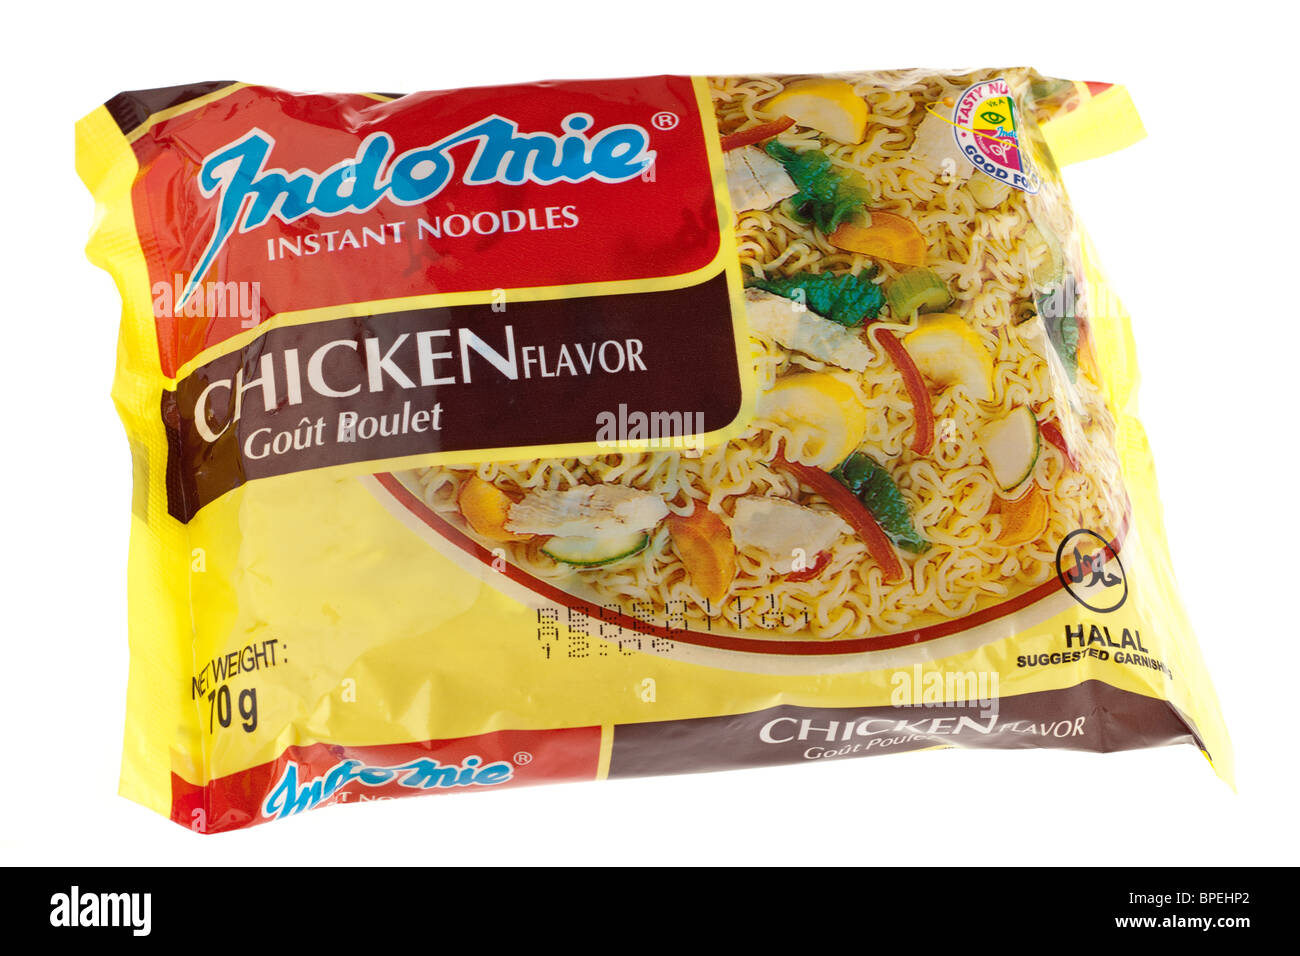 Packet of Indomie dried instant noodles - Stock Image